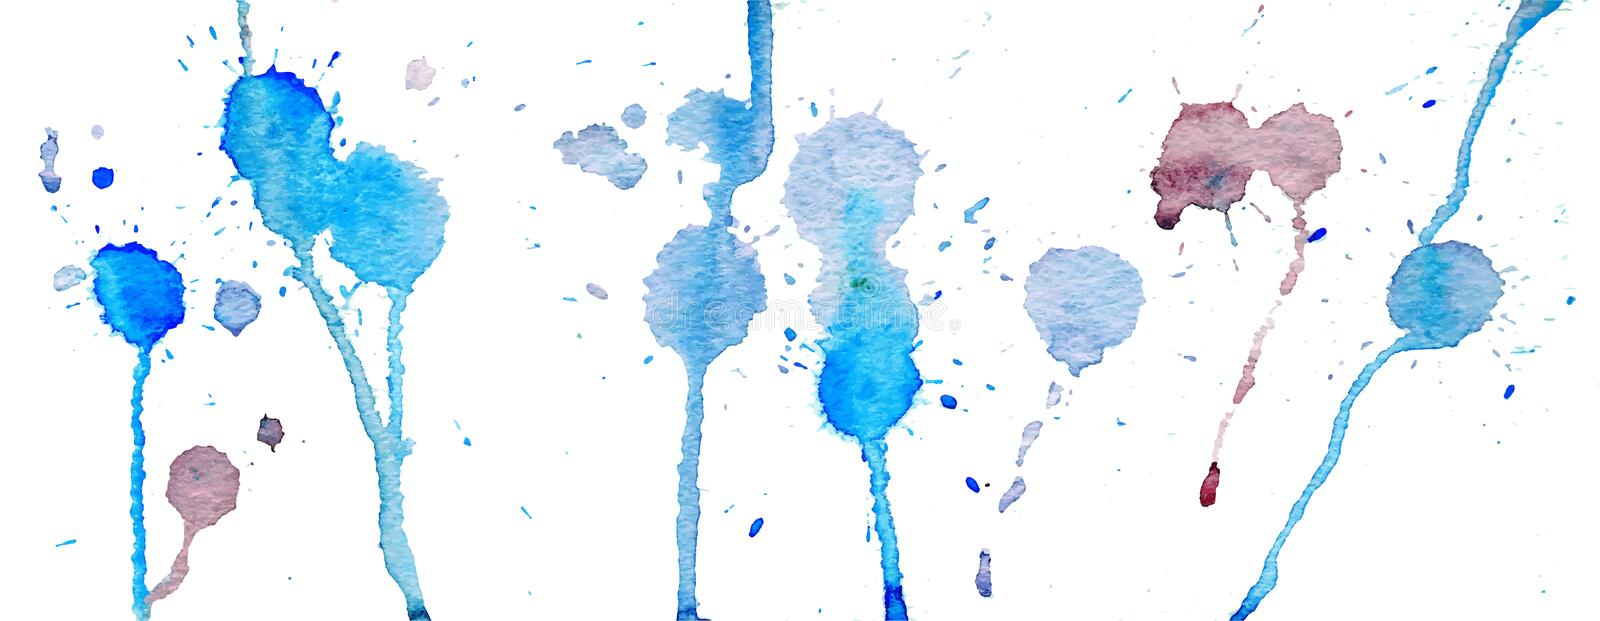 Blue watercolor splashes and blots on white background. Ink painting. Hand drawn illustration. Abstract watercolour artwork. vector illustration